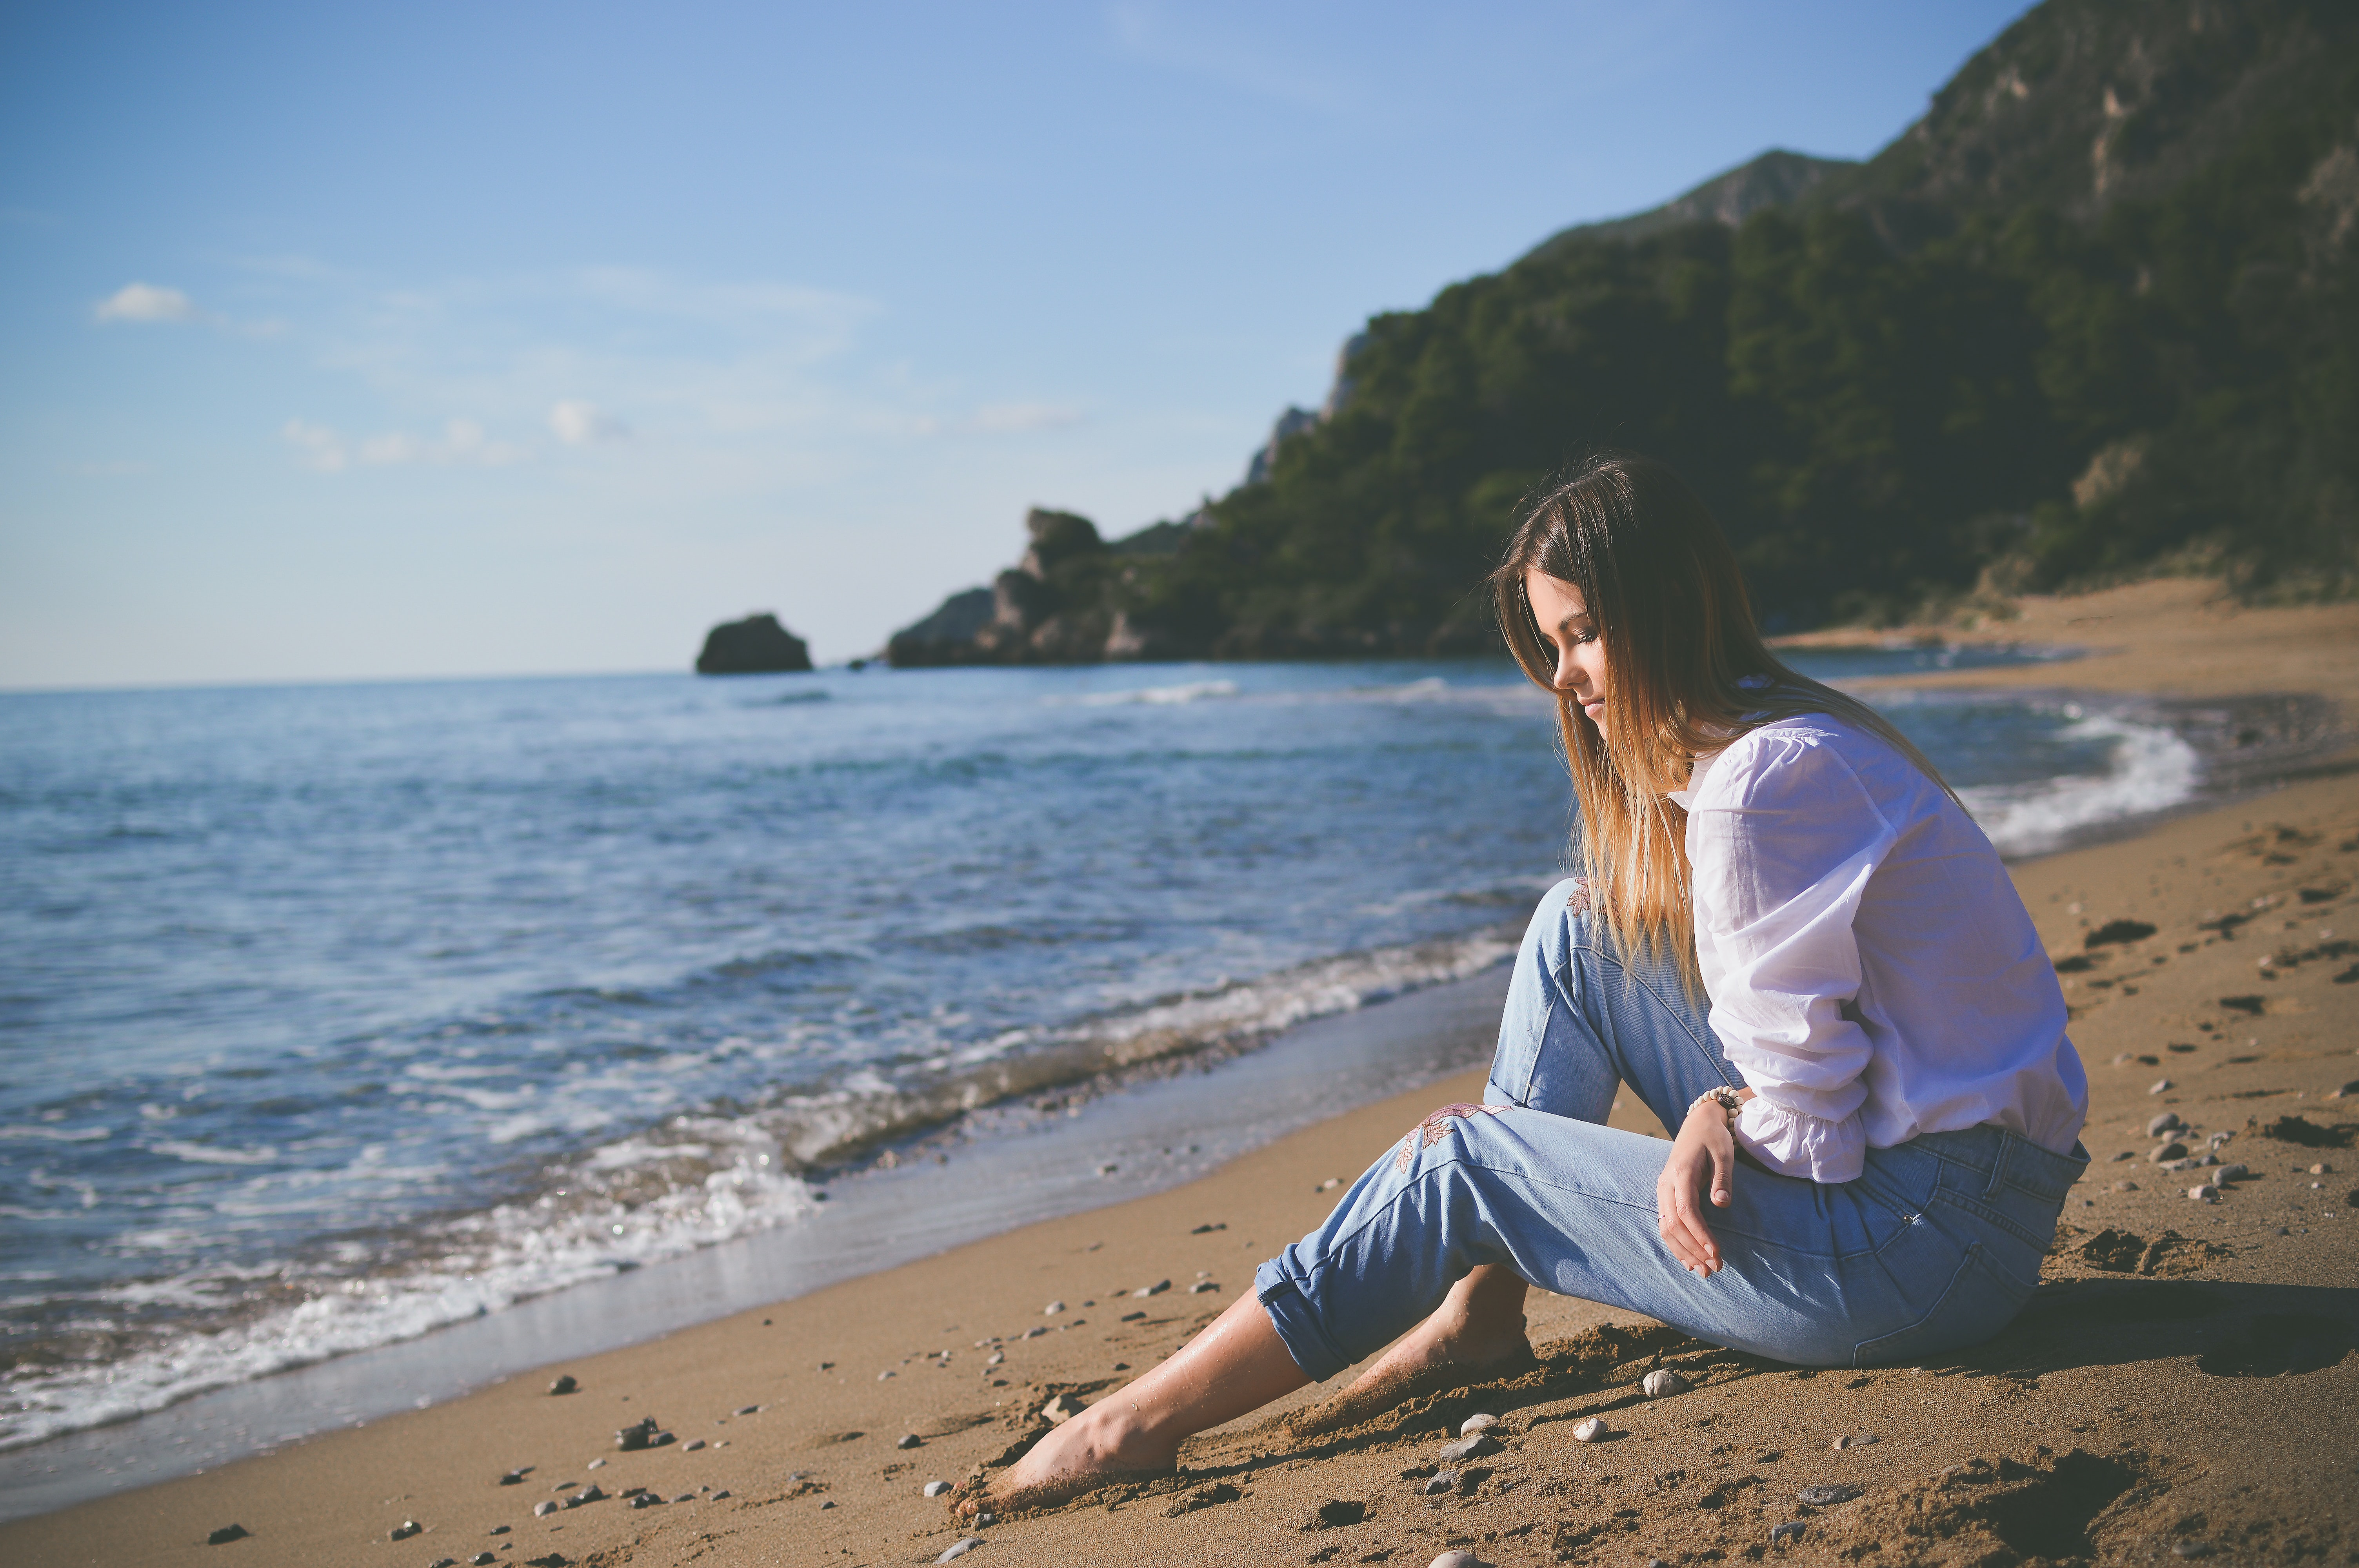 woman sitting on beach shore during daytime